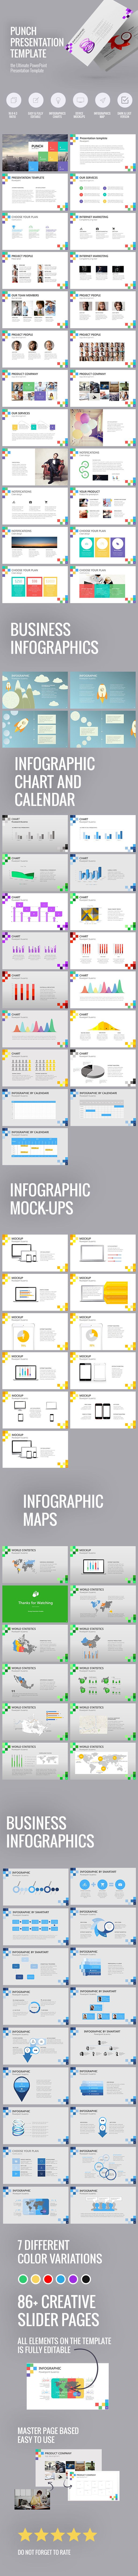 Punch Presentation Template for Business #powerpoint #powerpointtemplate Download: http://graphicriver.net/item/punch-presentation-template-for-business/10393125?ref=ksioks